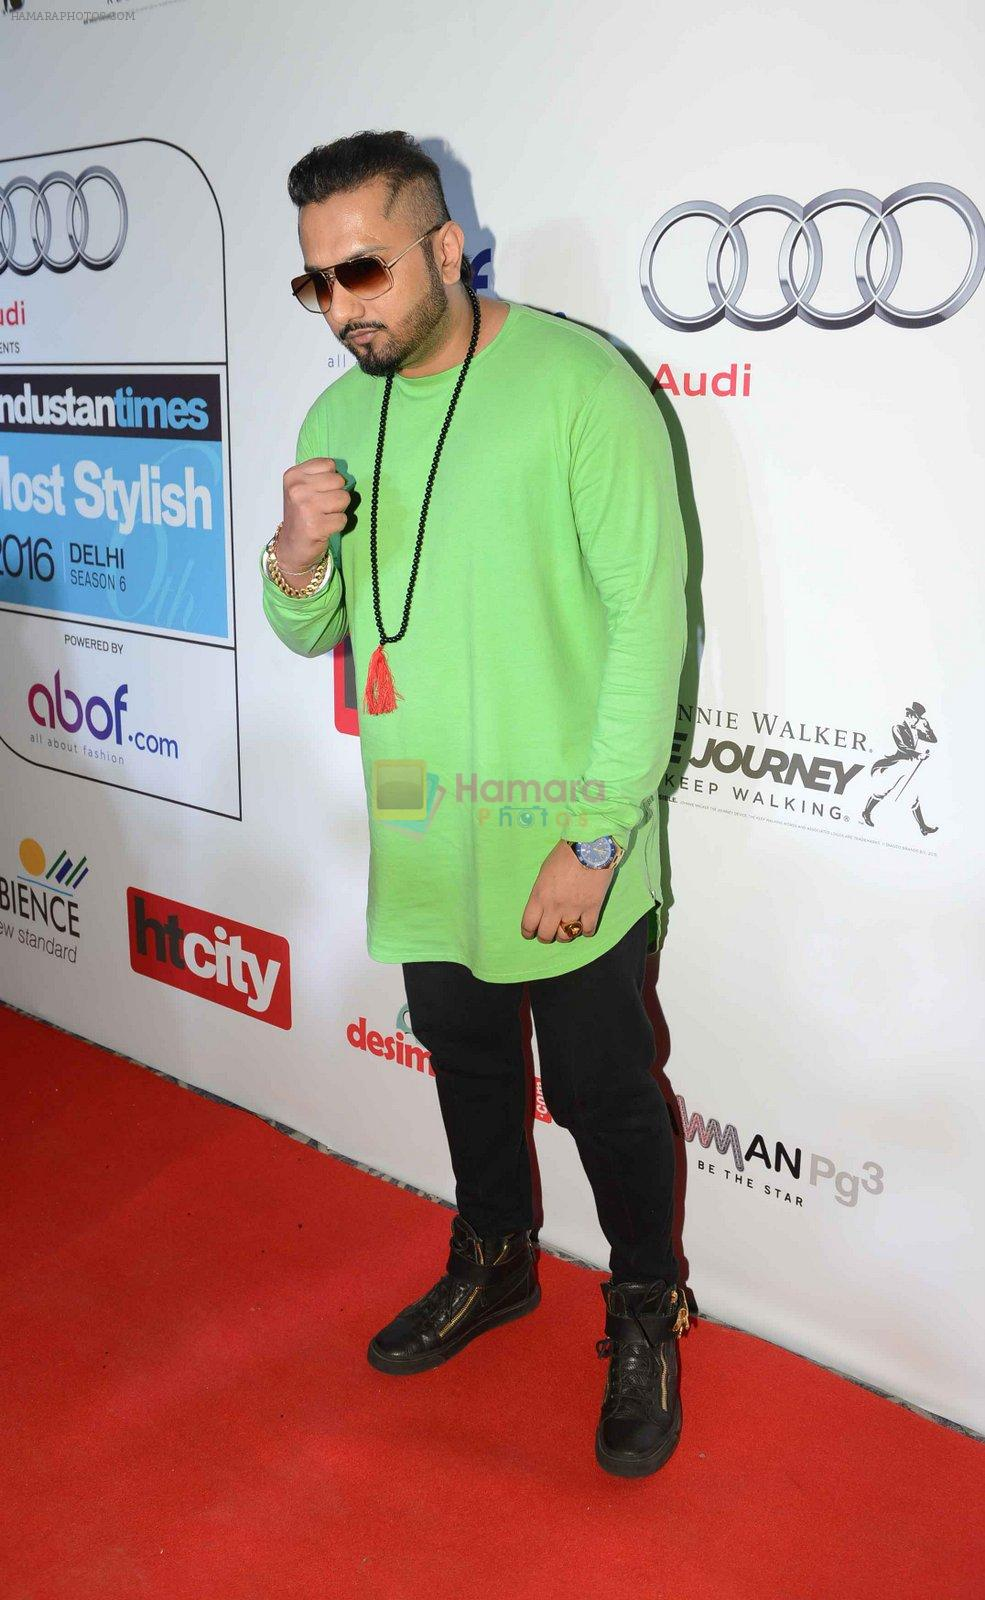 to wear - Ht delhis city most stylish video